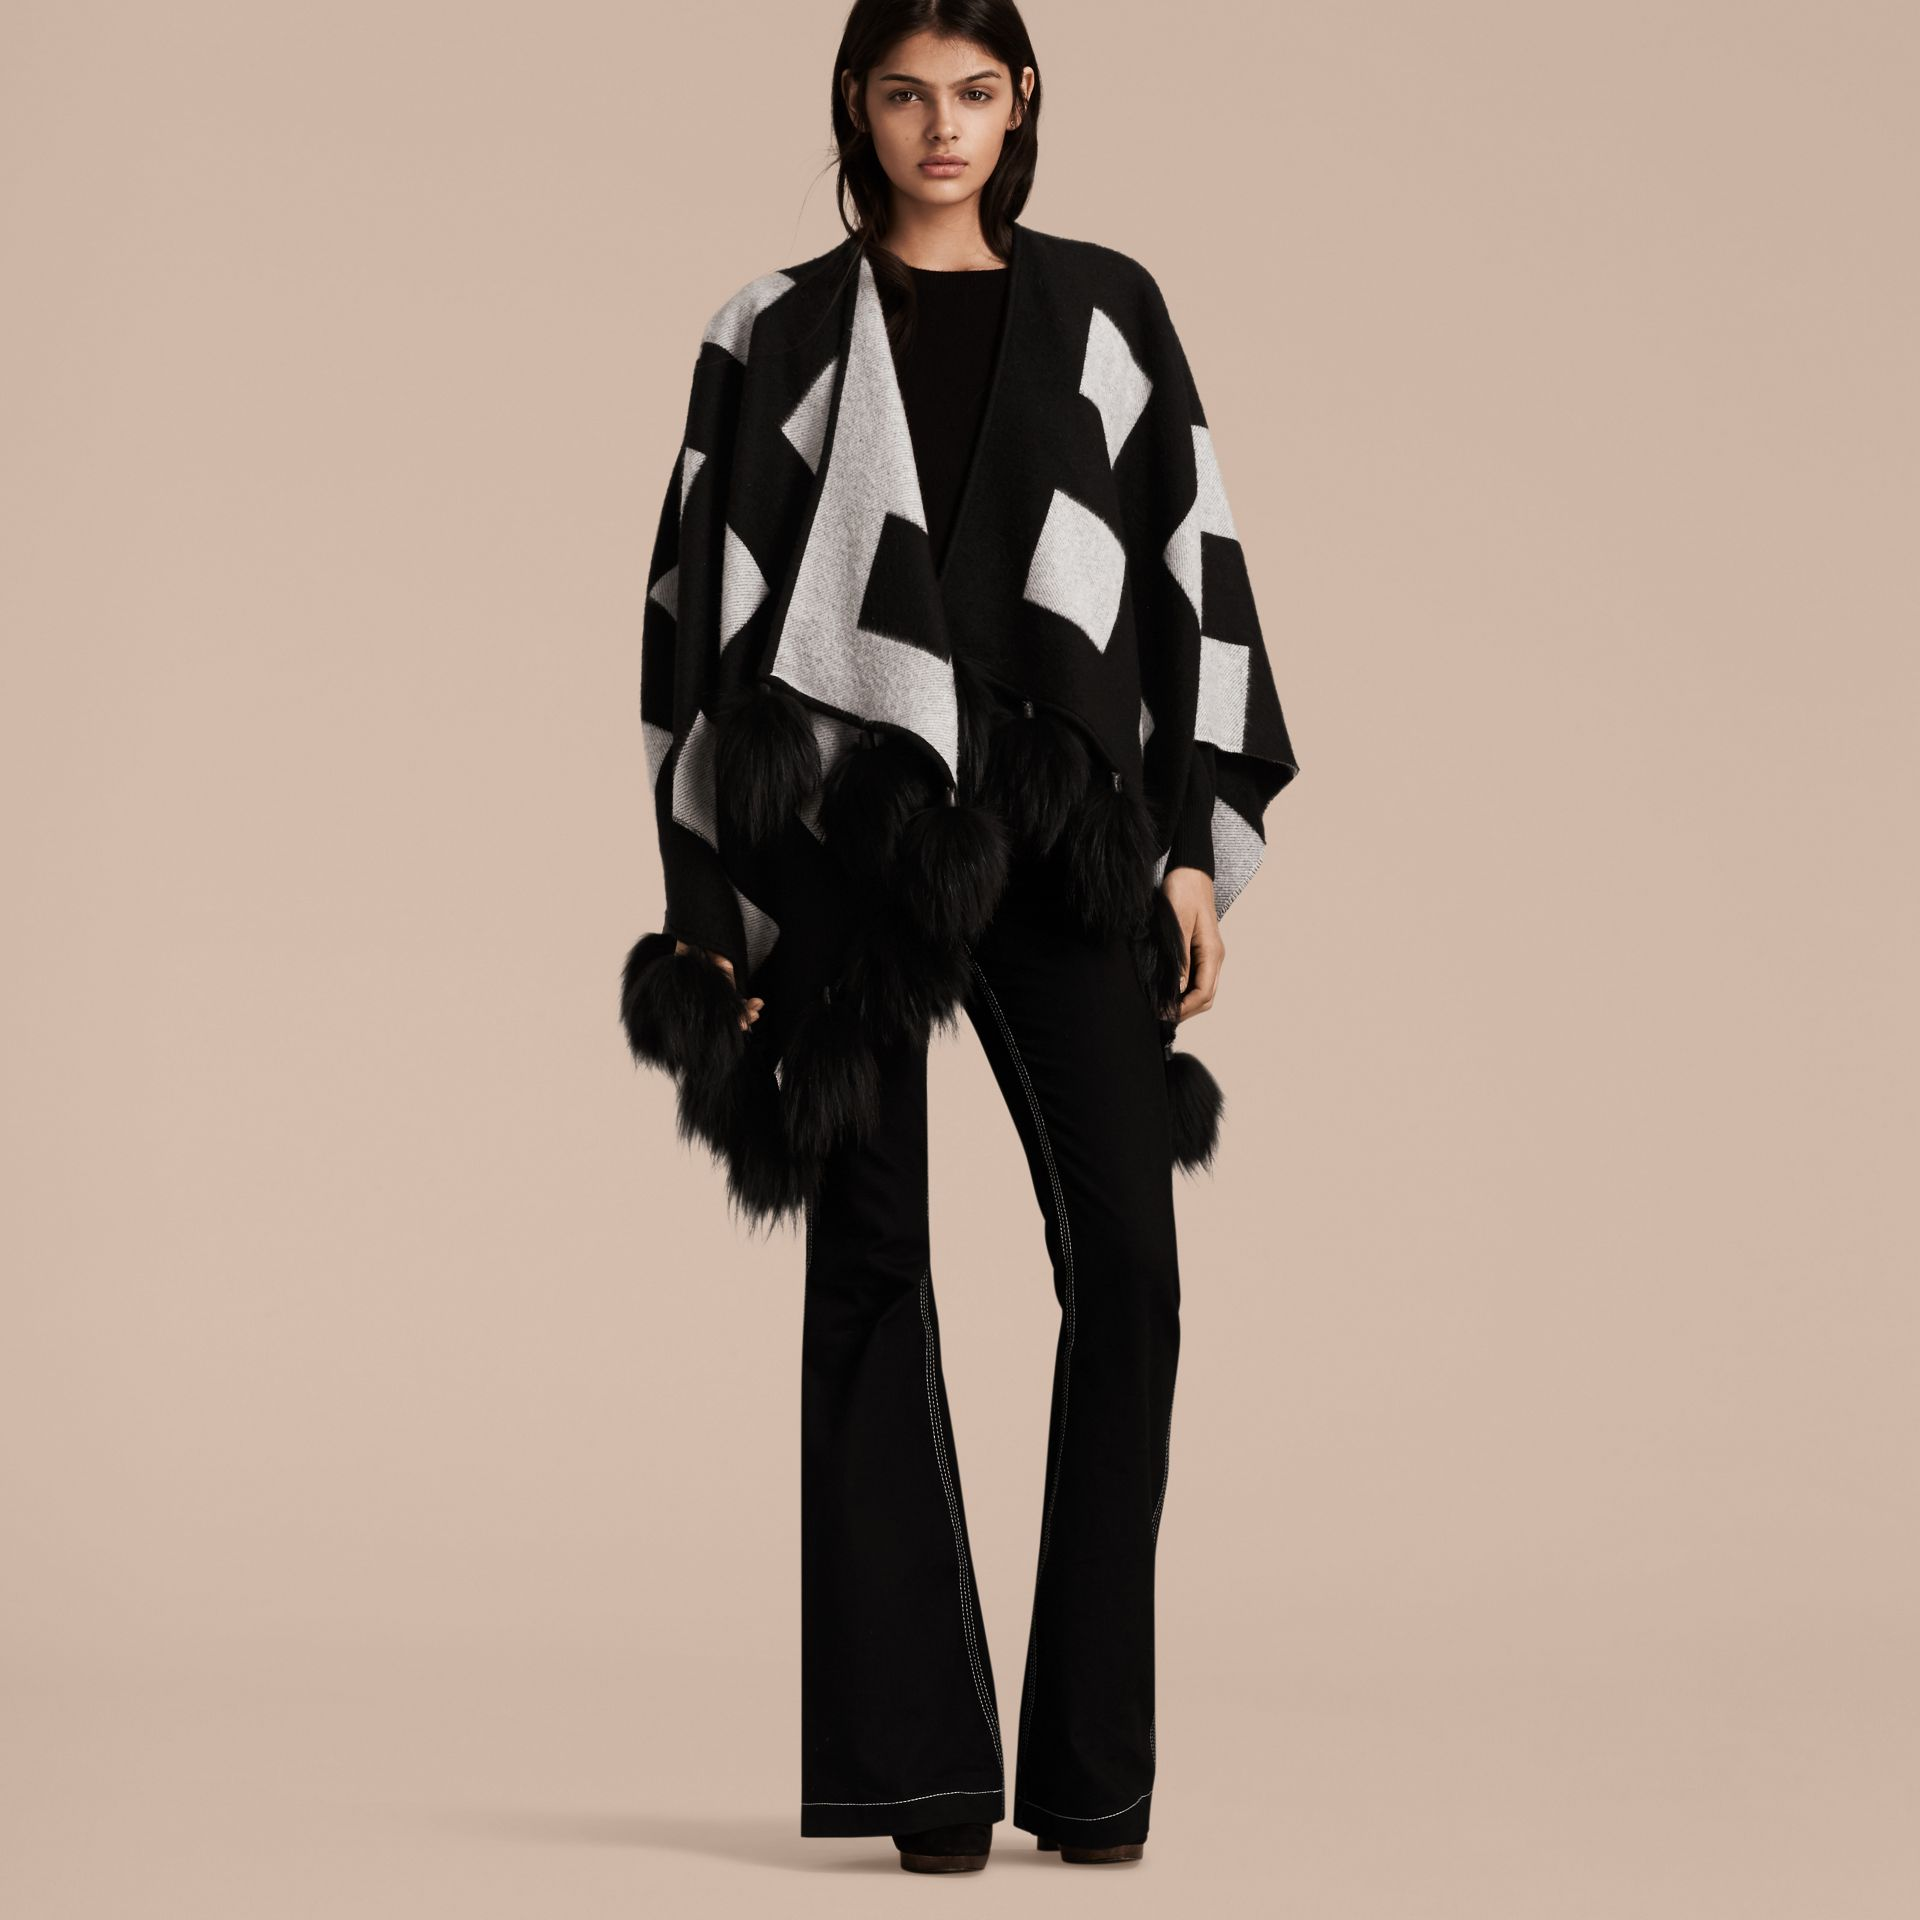 Black/white Check Jacquard Cashmere Poncho with Raccoon Pom-poms - gallery image 6